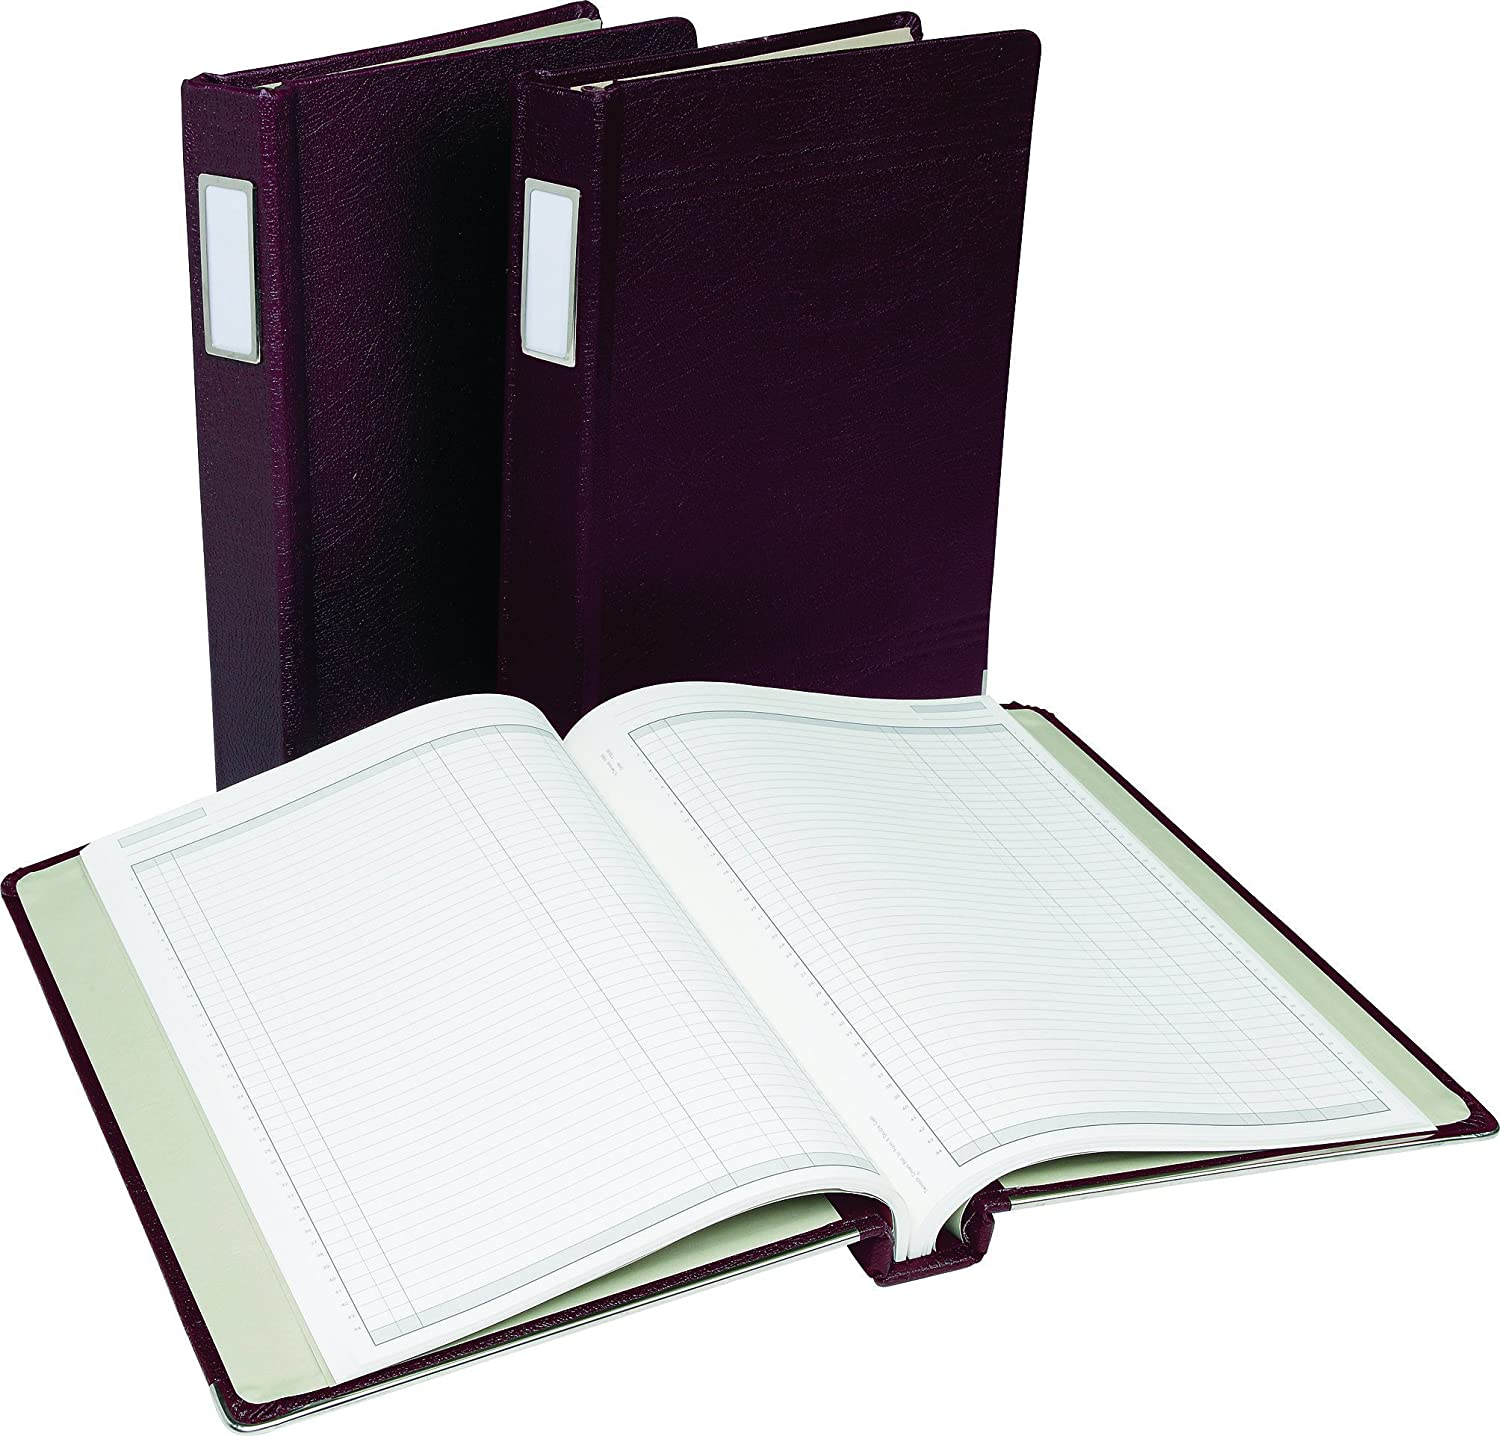 Rexel Twinlock Crown 3C Binders Black Contains up to 200 Sheets